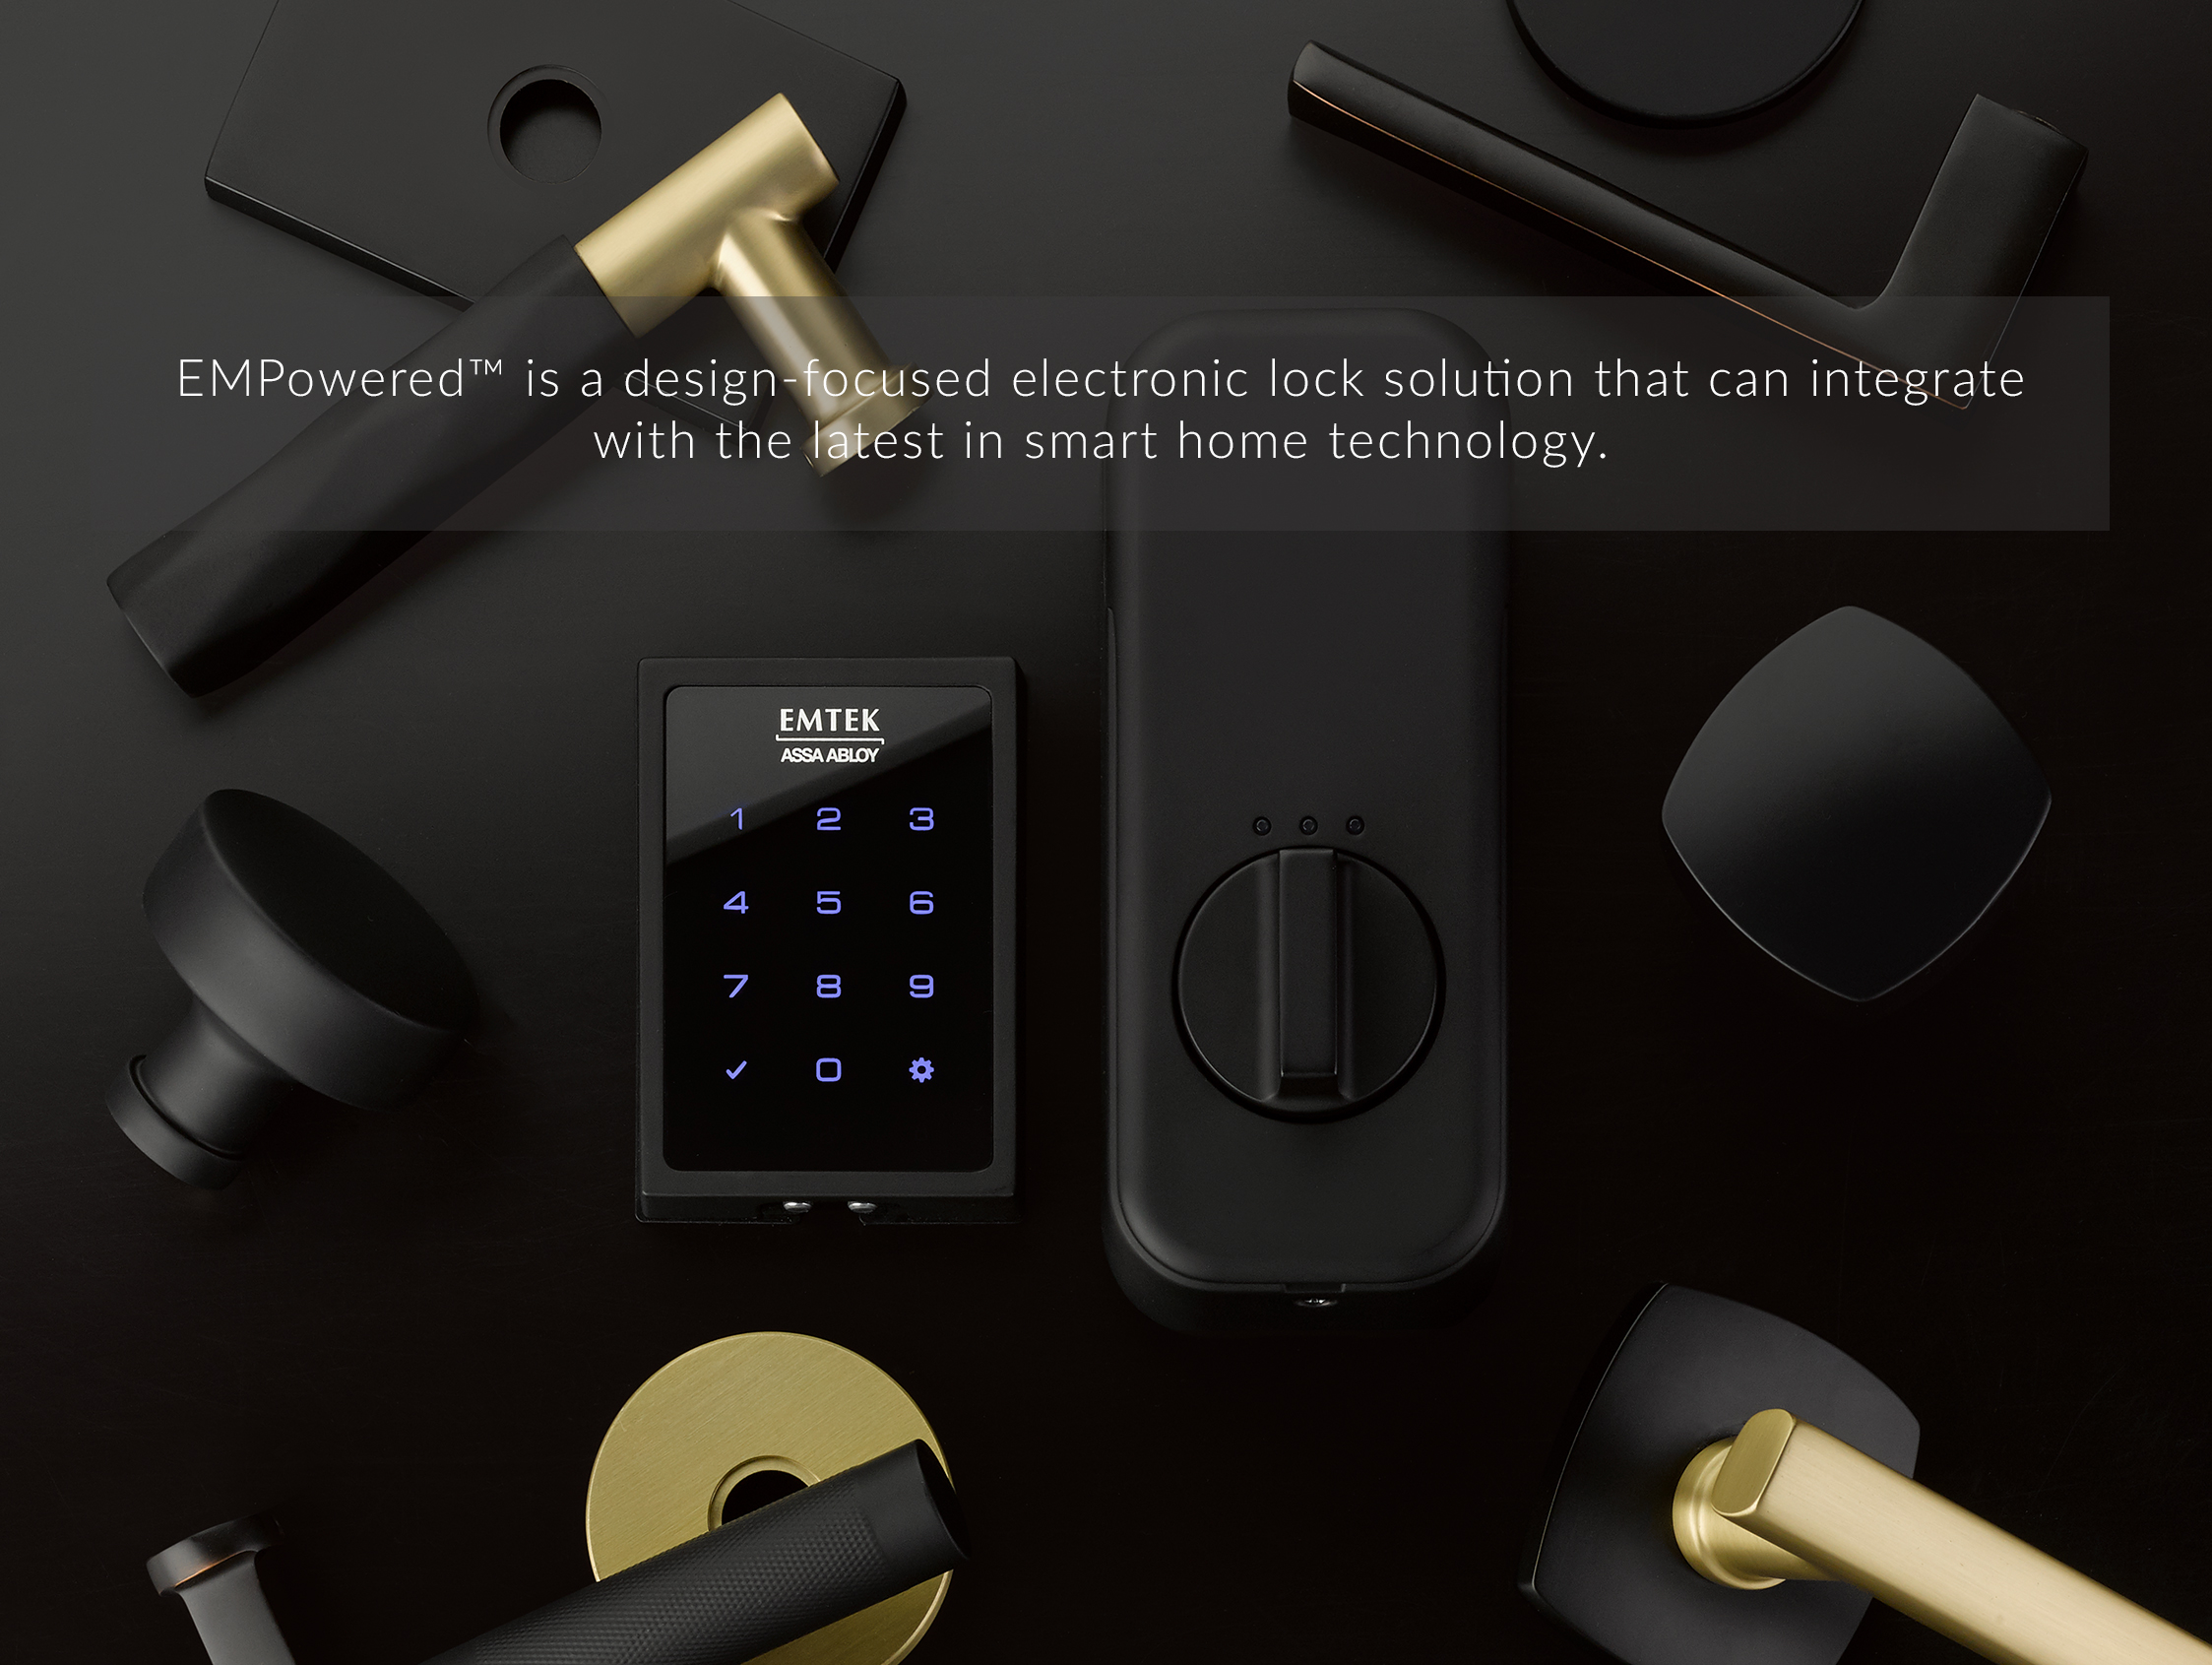 EMPowered™ is the design focused solution for a motorized deadbolt that can integrate with smart home technology.